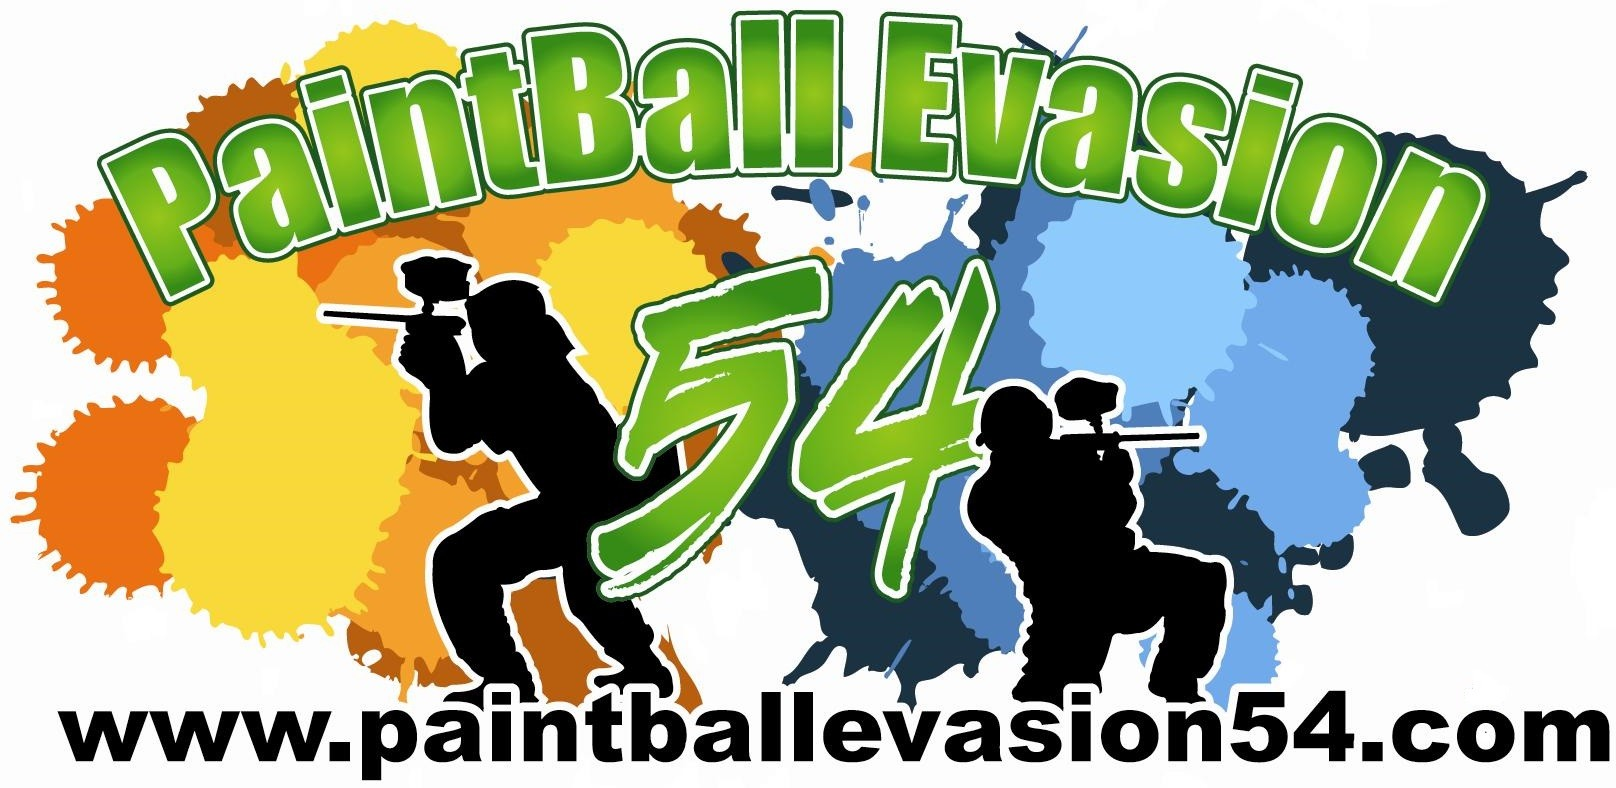 PAINTBALL EVASION 54